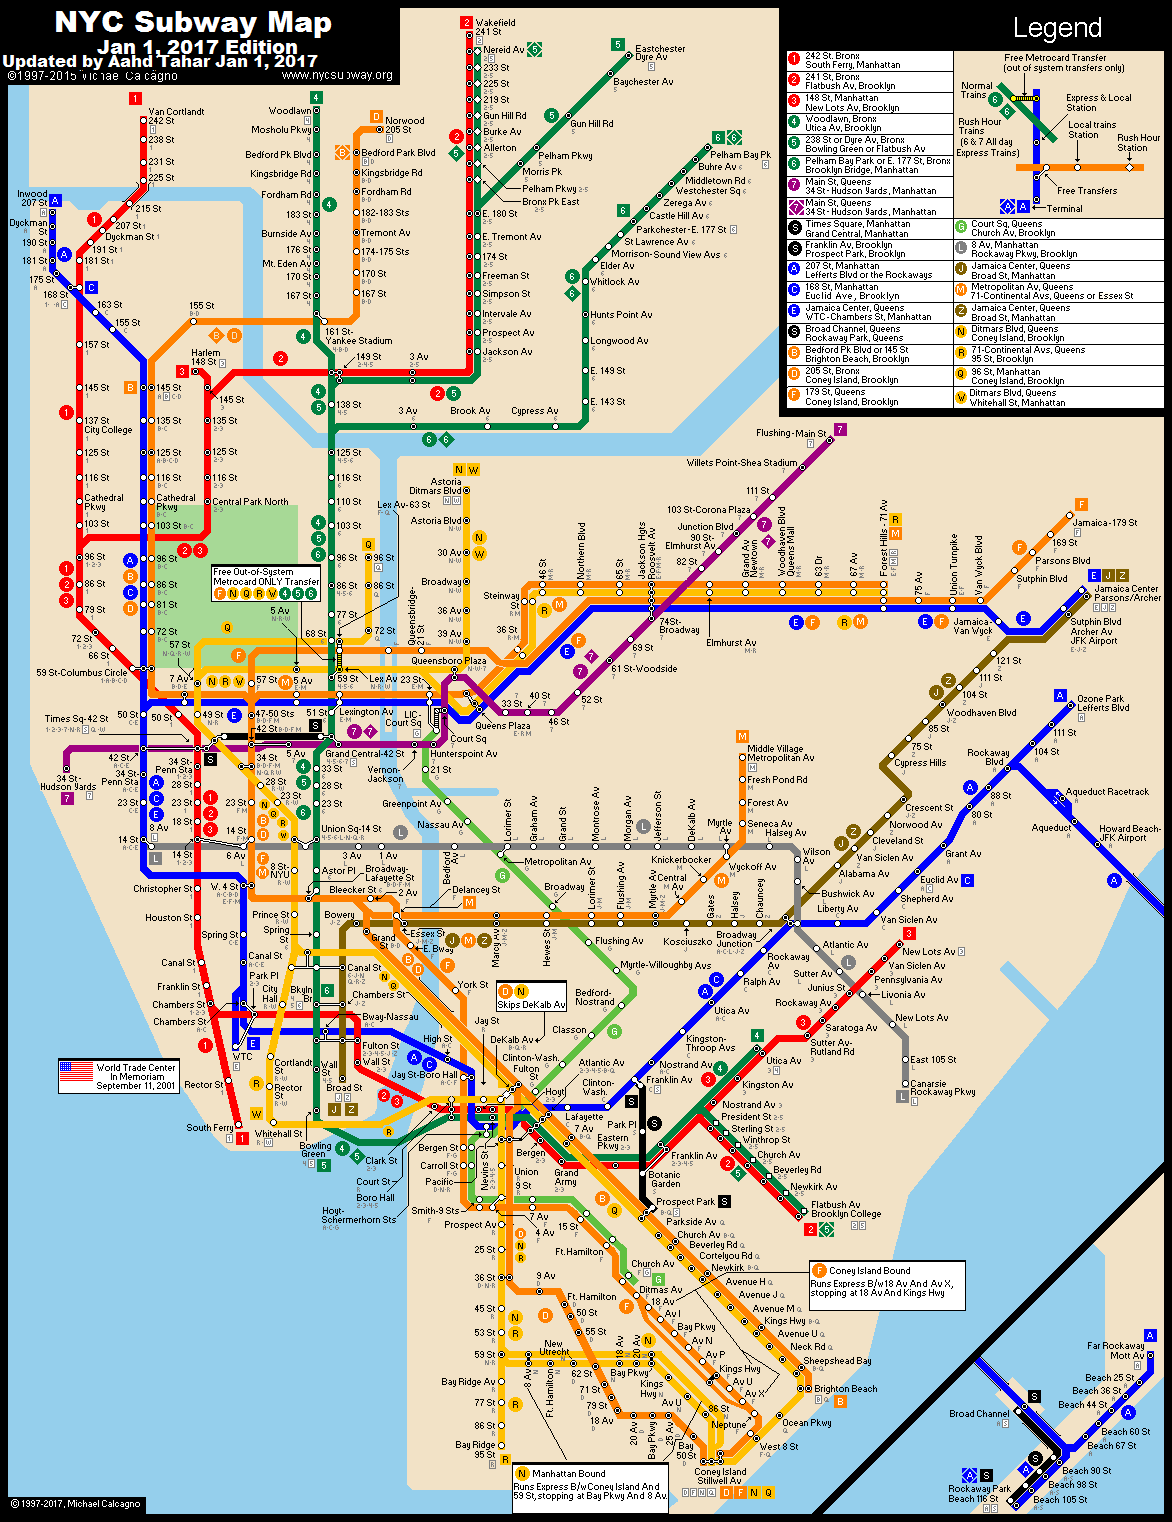 New York Subway Map .nycsubway.org: New York City Subway Route Map by Michael Calcagno New York Subway Map